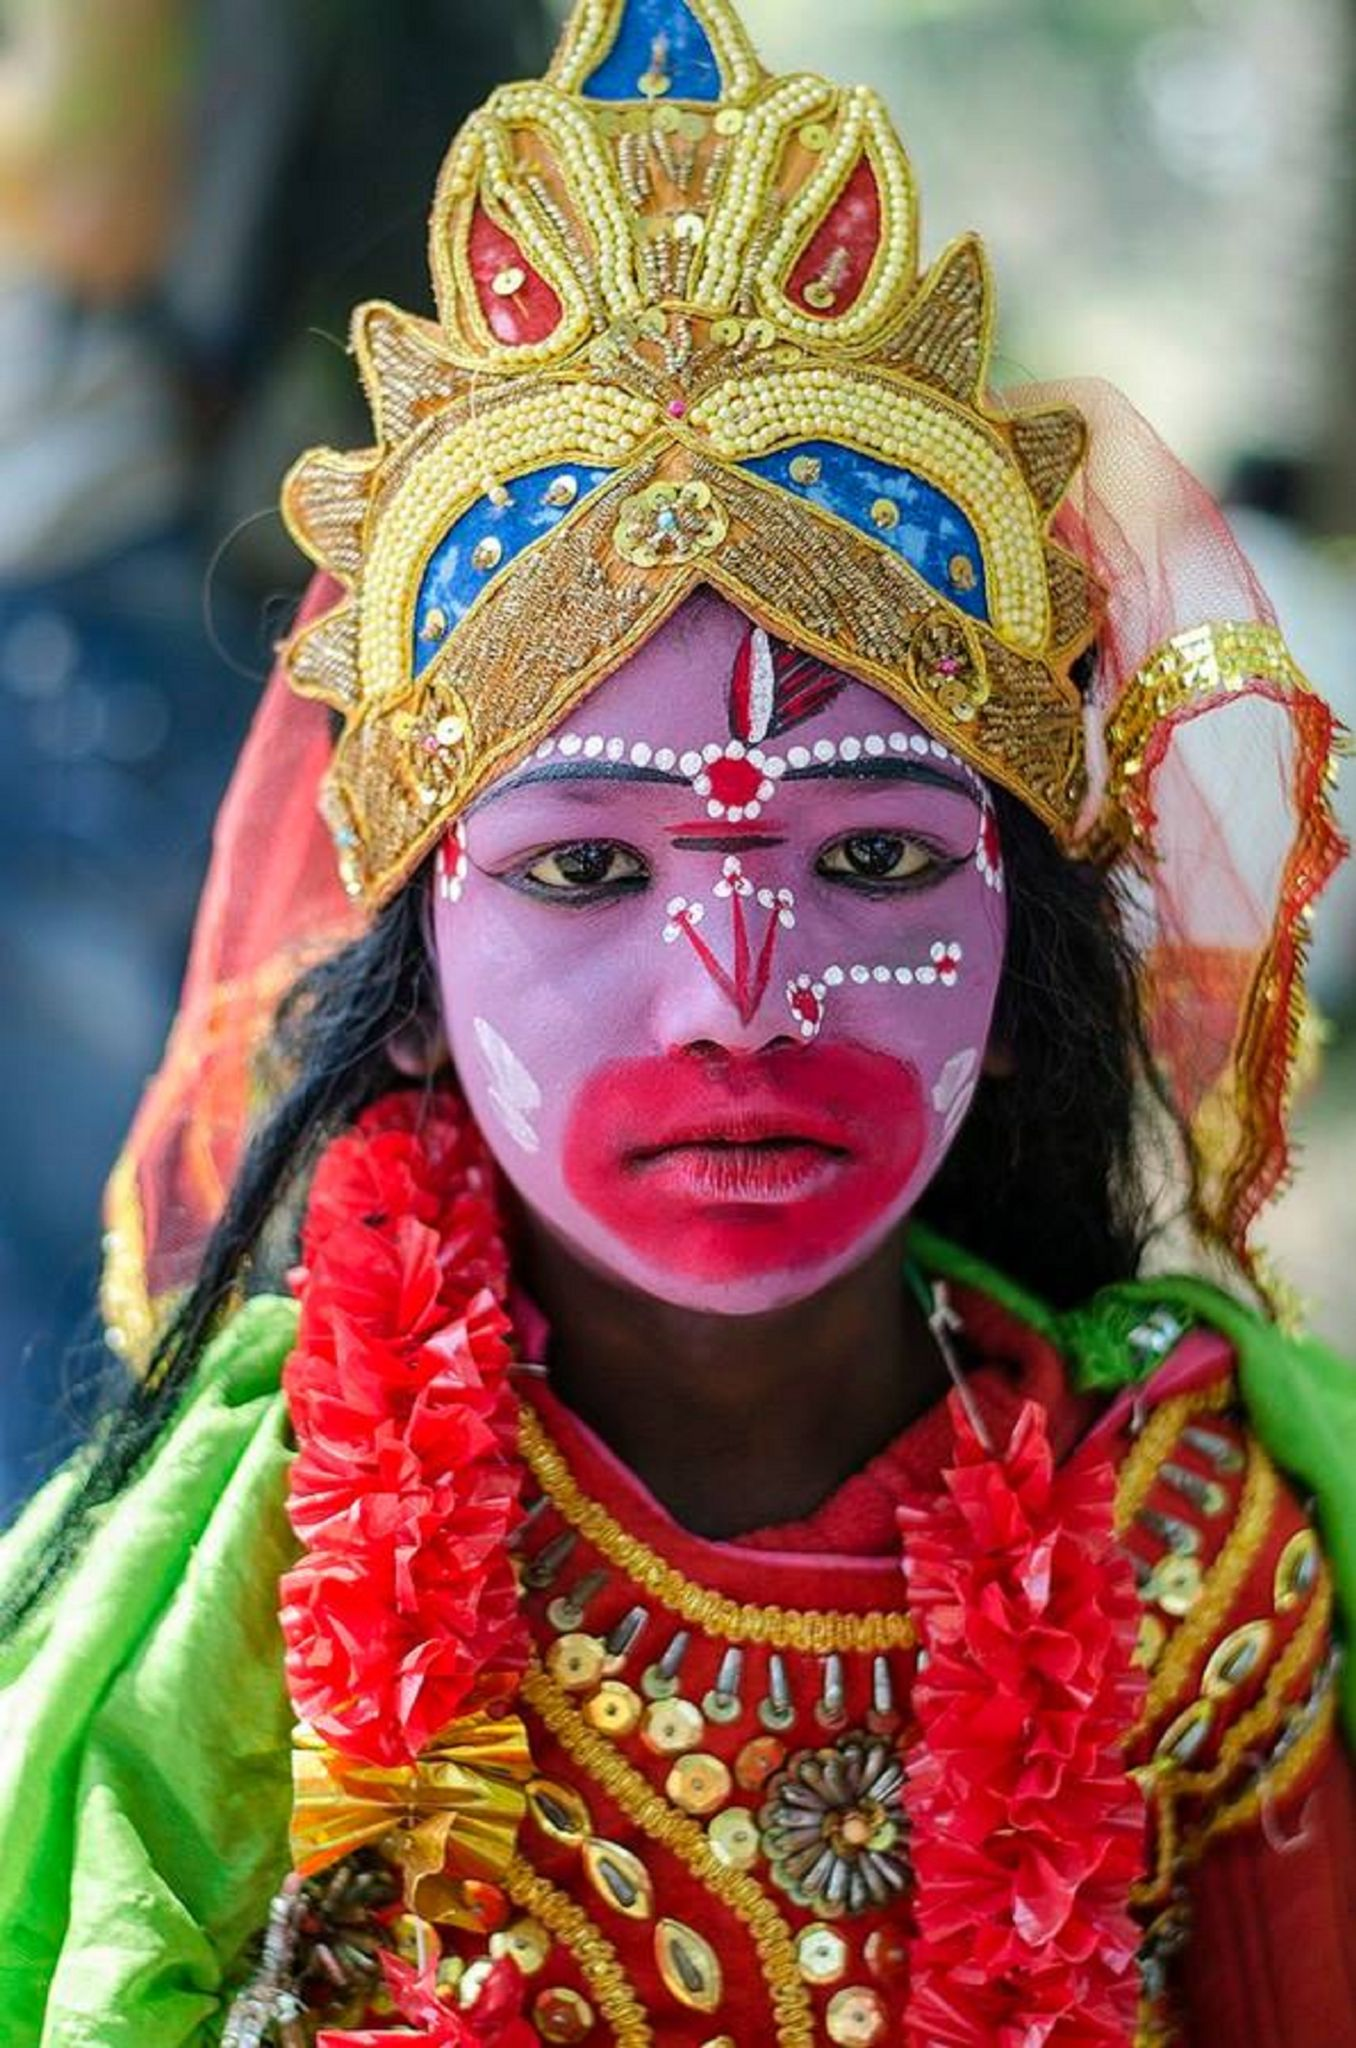 Portraits of Color by Anirban Chaklader Frames